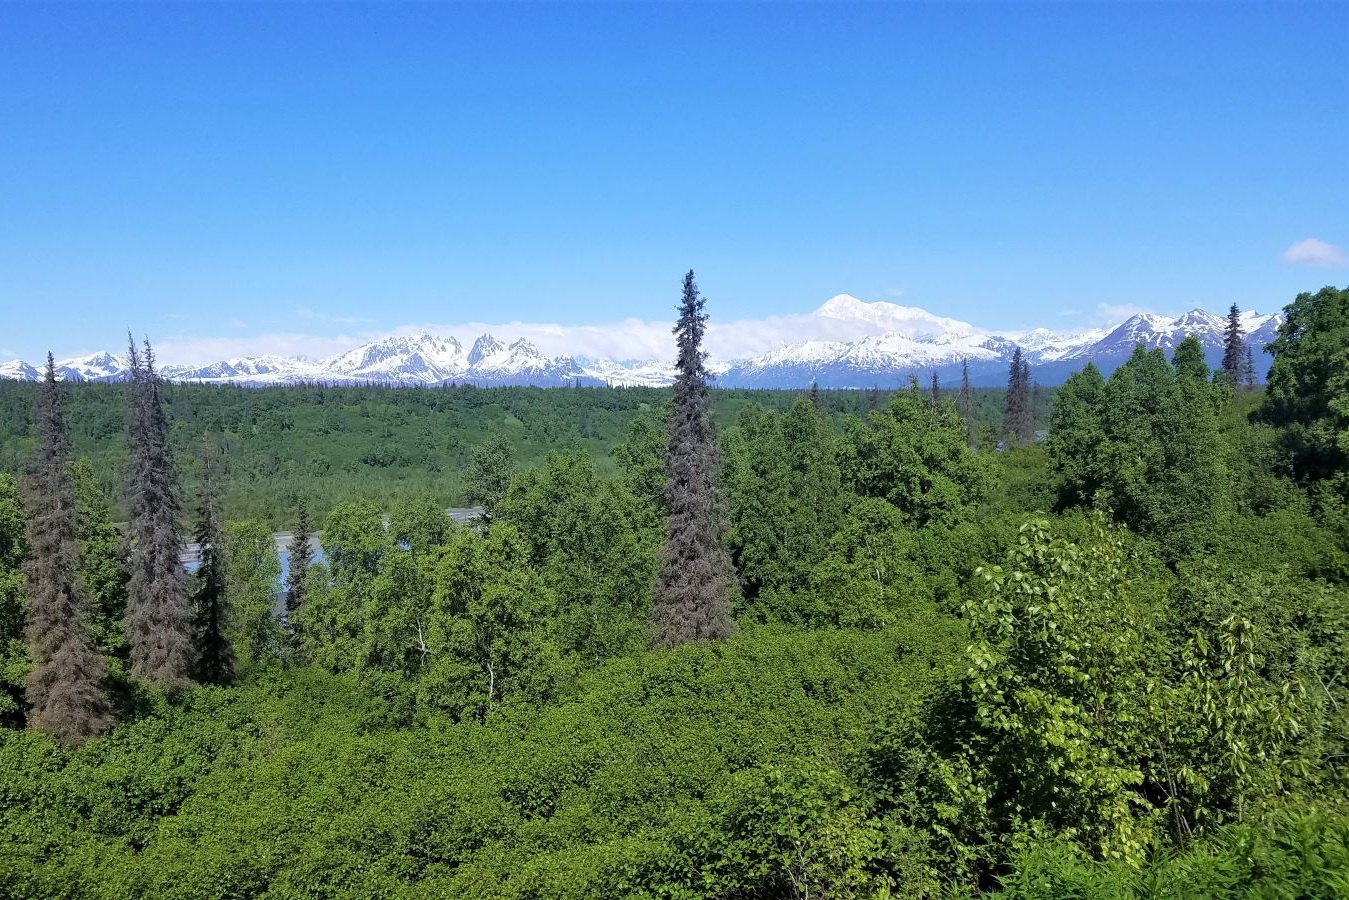 An Alaska itinerary for 10 days should include a trip to see Denali, the snow-capped peak in the center of this mountain range with forests of green in front.